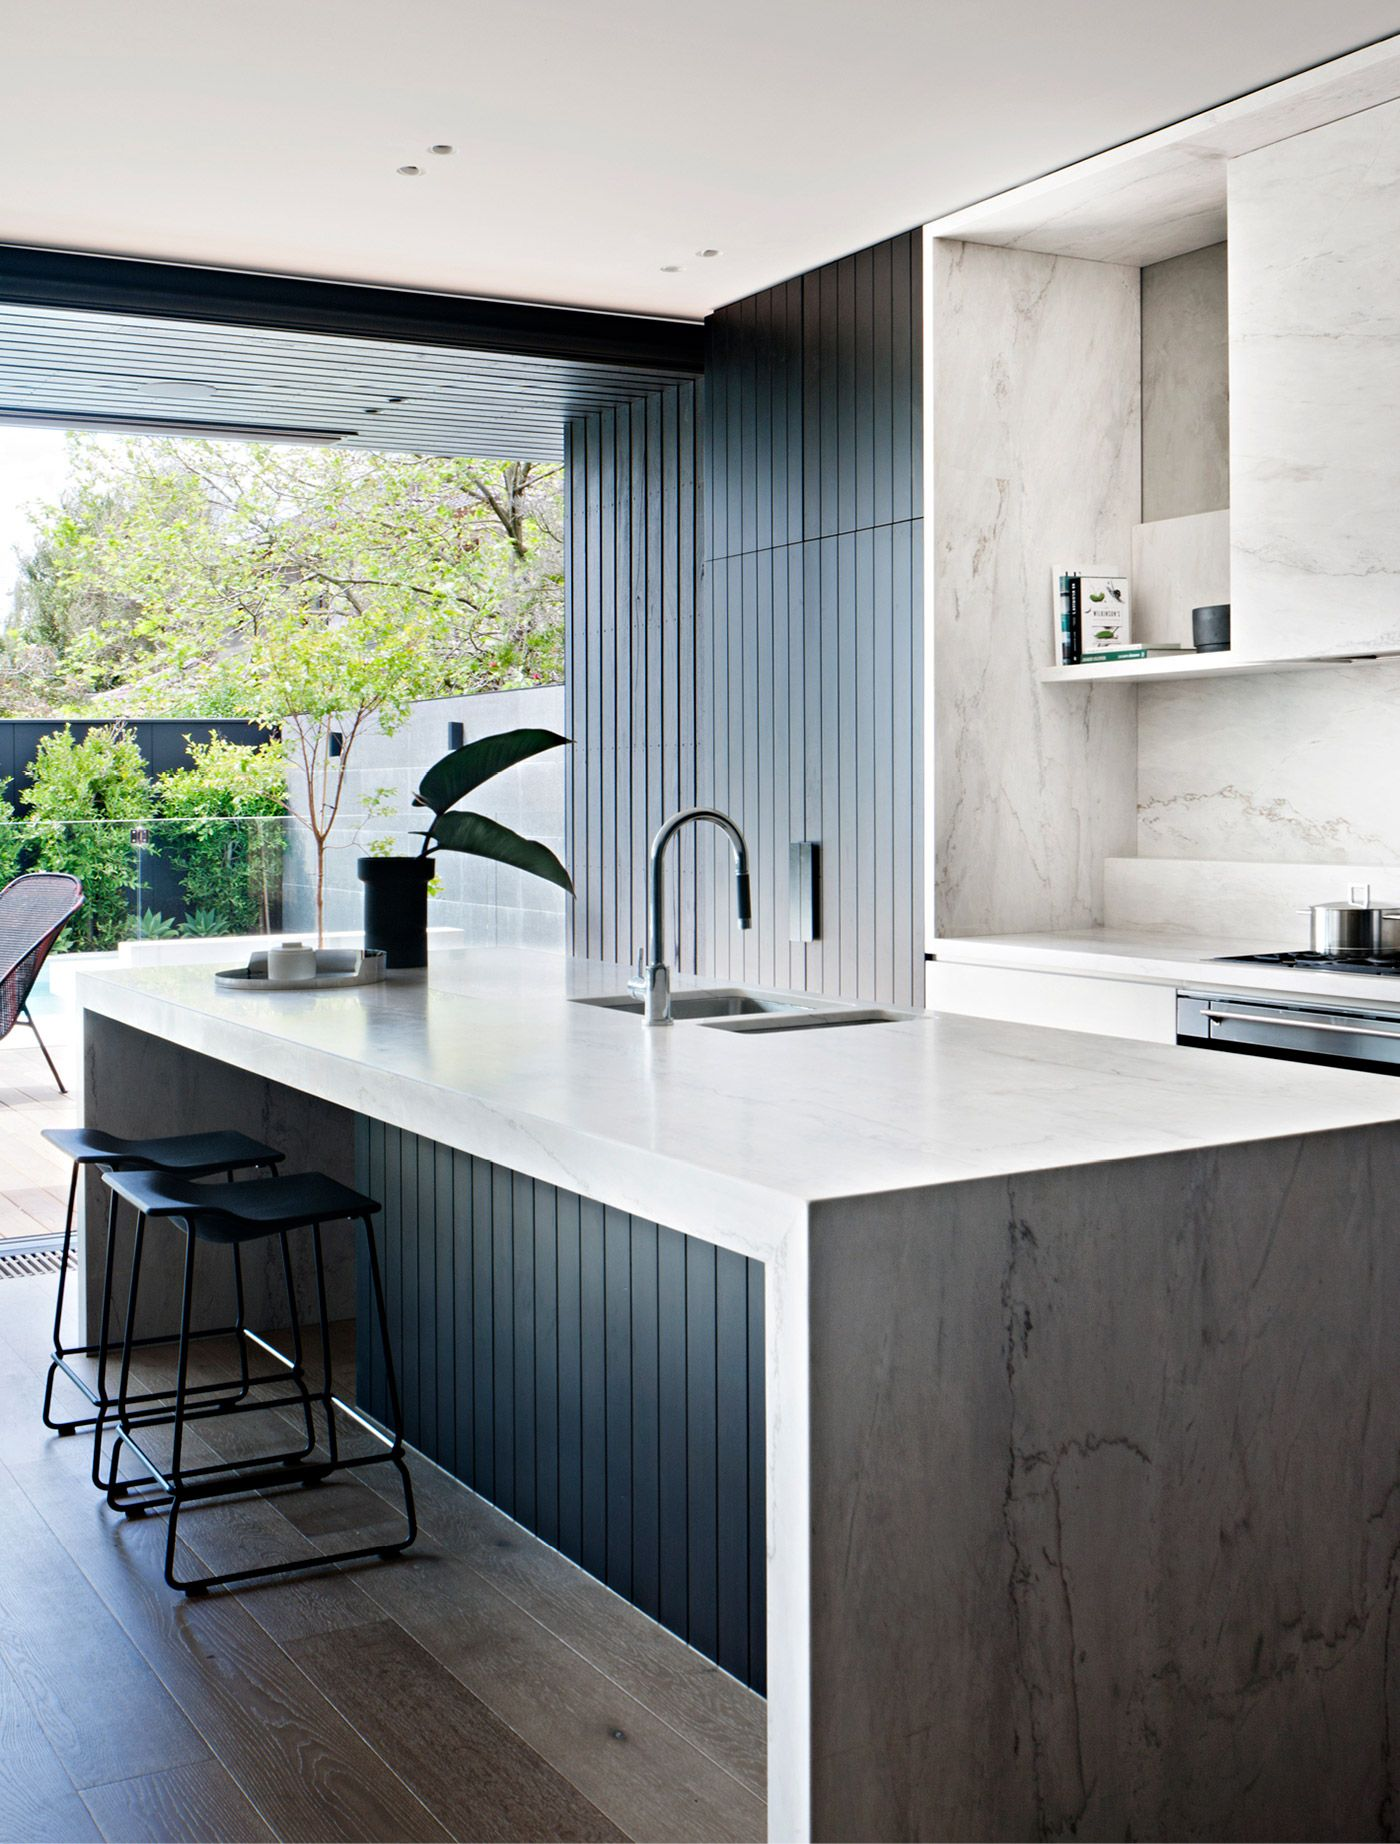 Kitchen Design Images Australia Gallery Of Ddm Residence By Mim Design Strand Interior Design